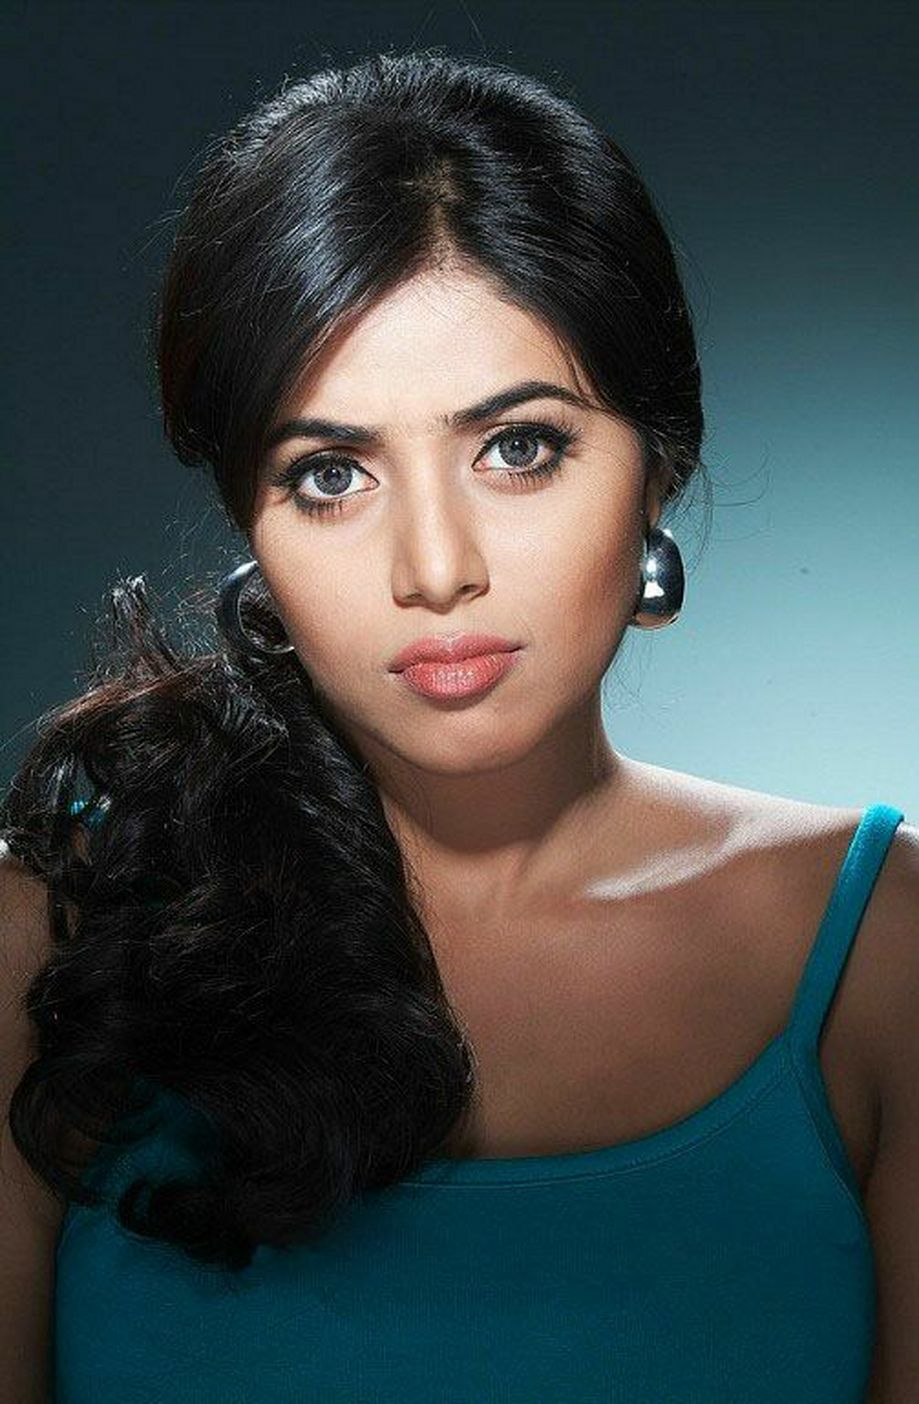 Poorna Spicy Photoshoot Face CLoseup in an unbuttoned Thin Shirt Sensational Spicy Poorna